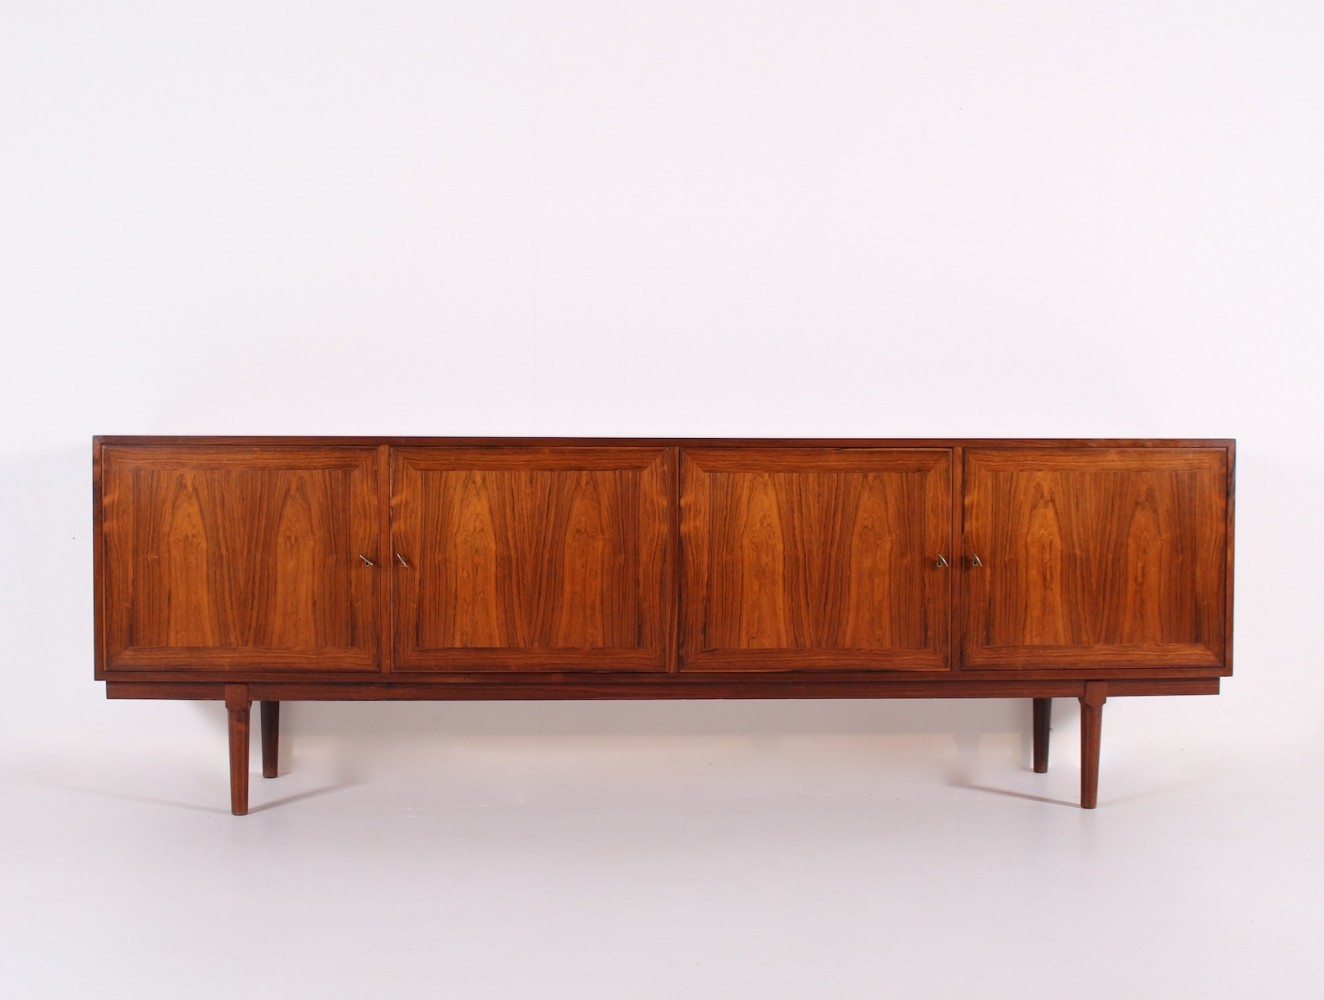 Rosewood sideboard by Arne Vodder for Vamo-Sønderborg